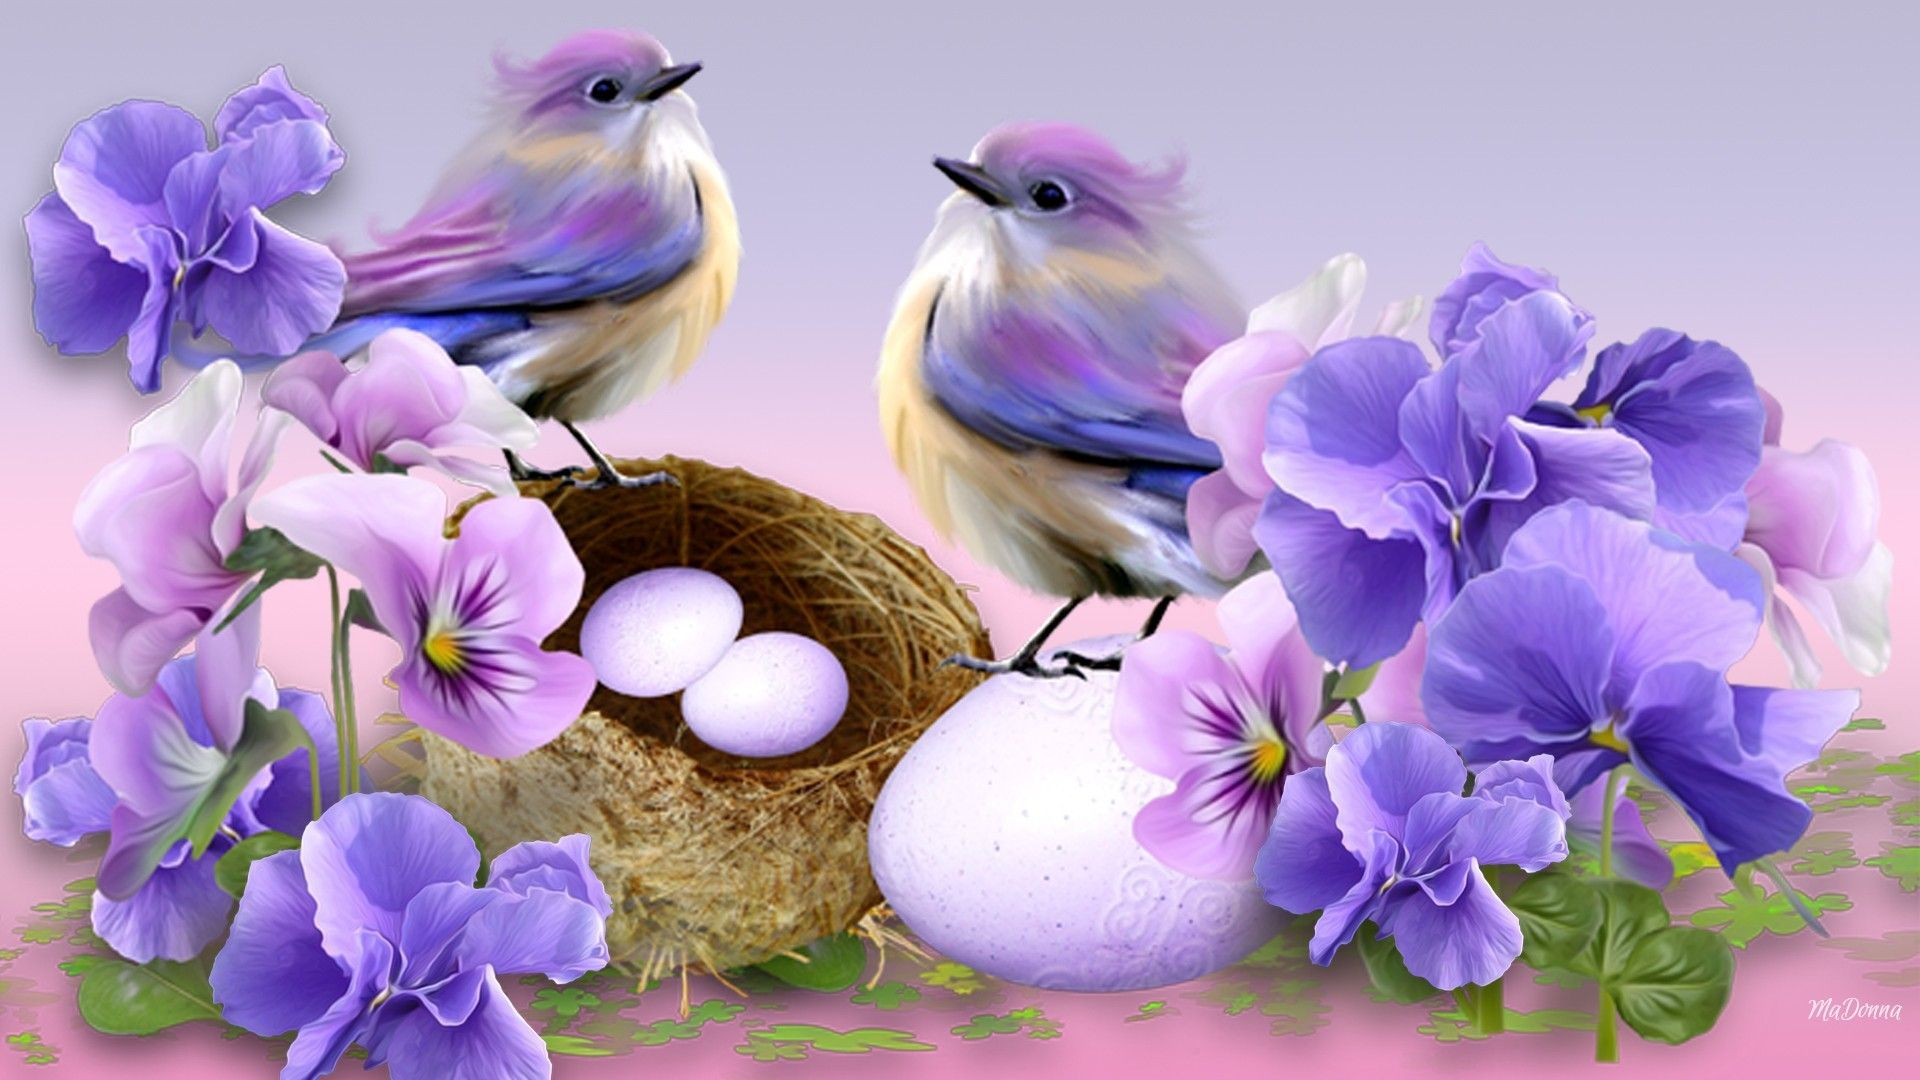 Beautiful Bird And Flower Wallpapers Top Free Beautiful Bird And Flower Backgrounds Wallpaperaccess We hope you enjoy these awesome flower field background images beautiful bird and flower wallpapers